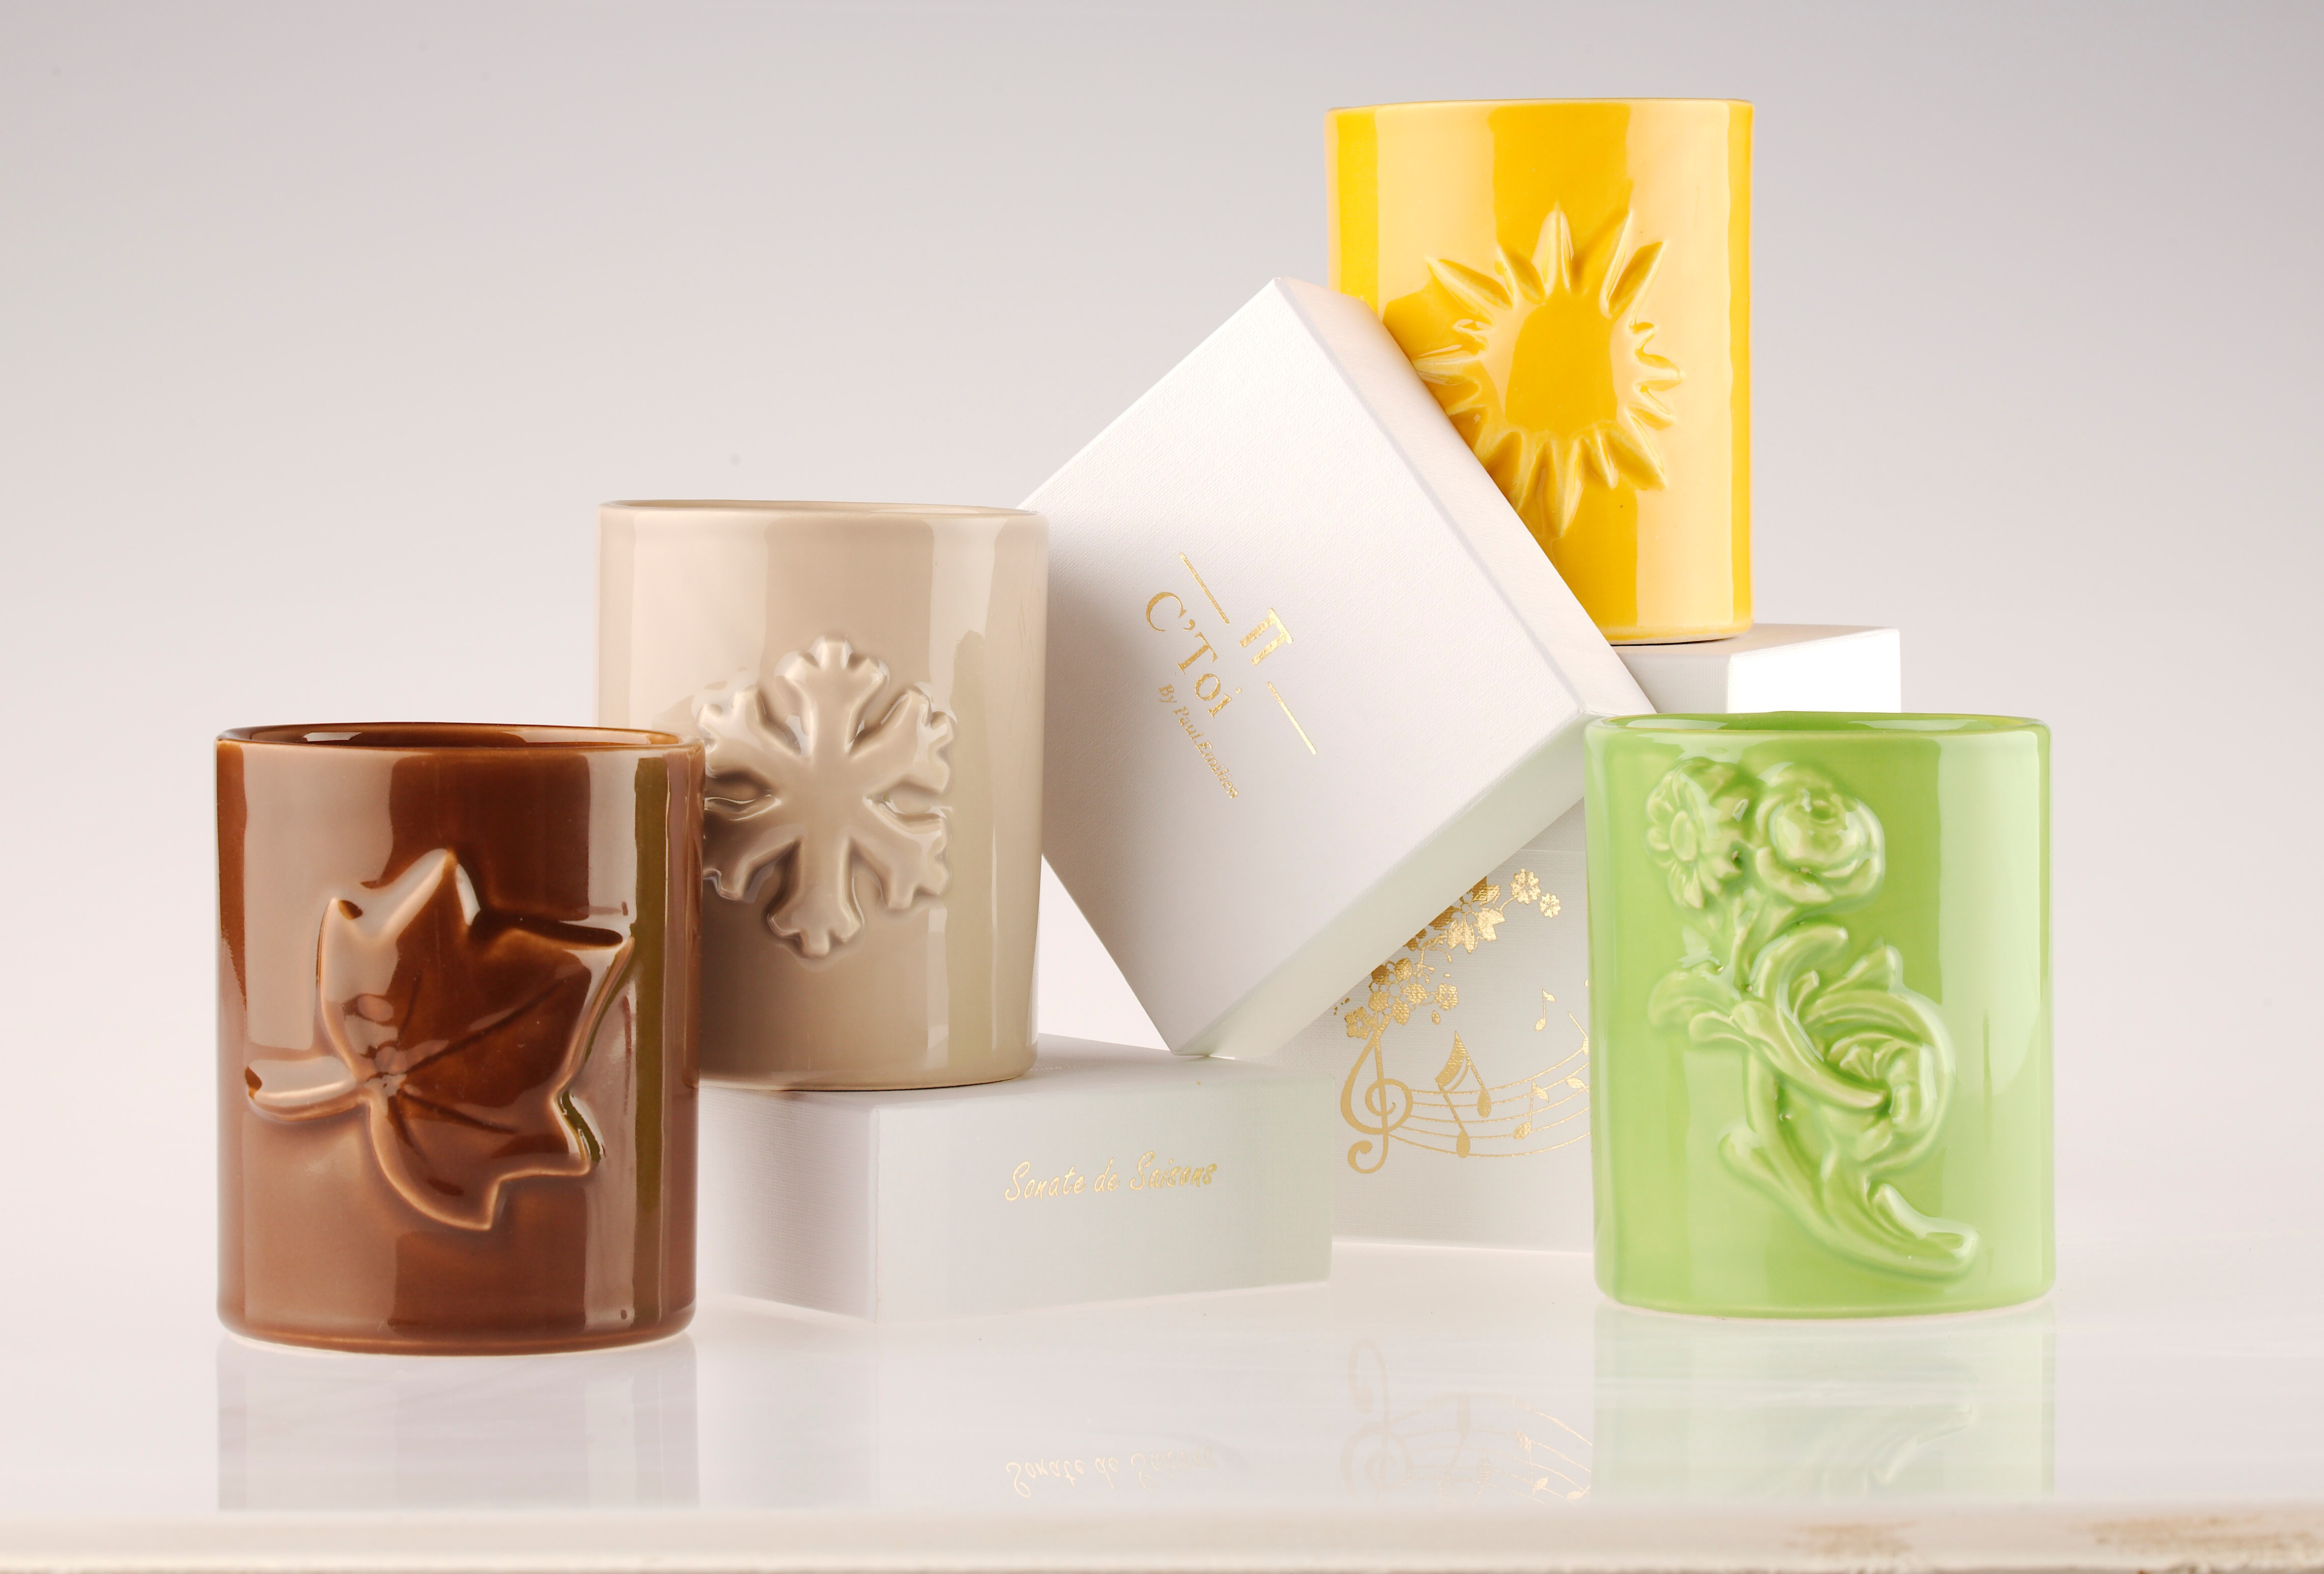 C Toi : high grade candle by Paul Emilien.  More info on http://www.ctoi-luxe.com/